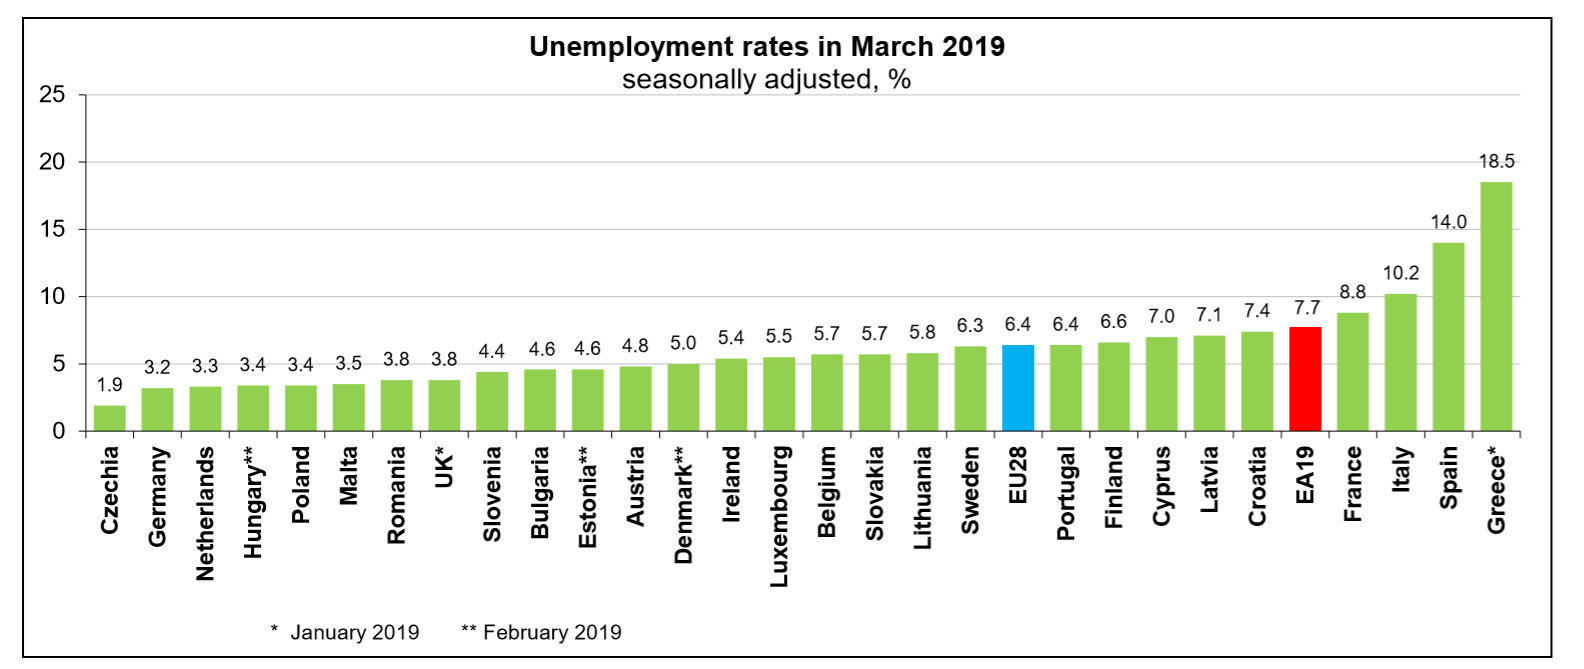 EU unemployment rate March 2019 member states